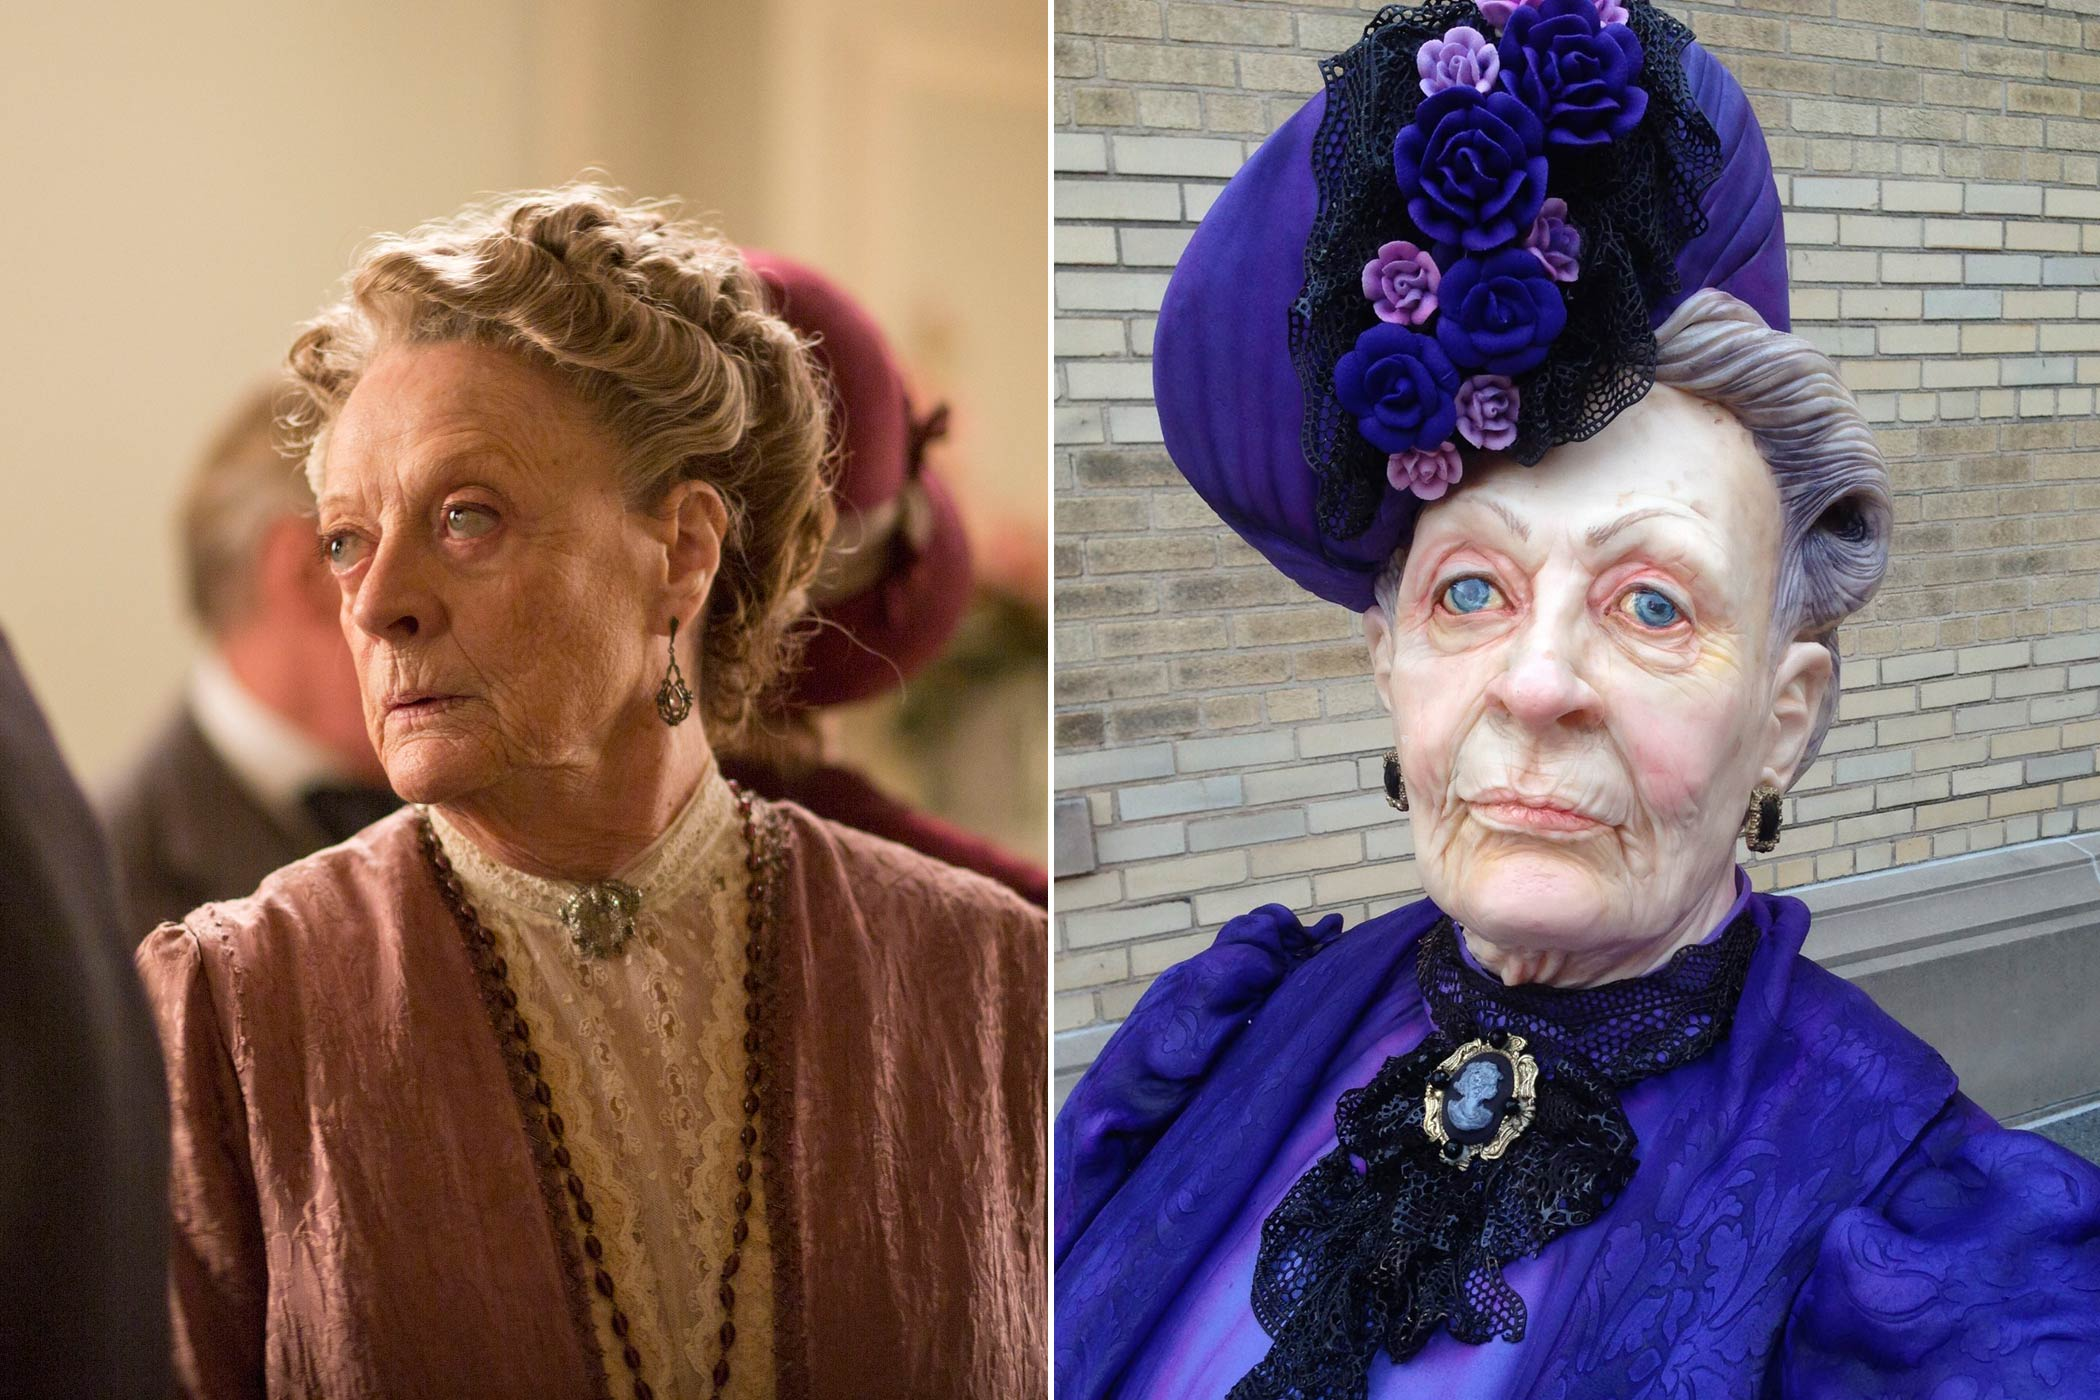 From left: Maggie Smith as the Dowager Countess in Downton Abbey; Dowager Countess cake by Karen Portaleo